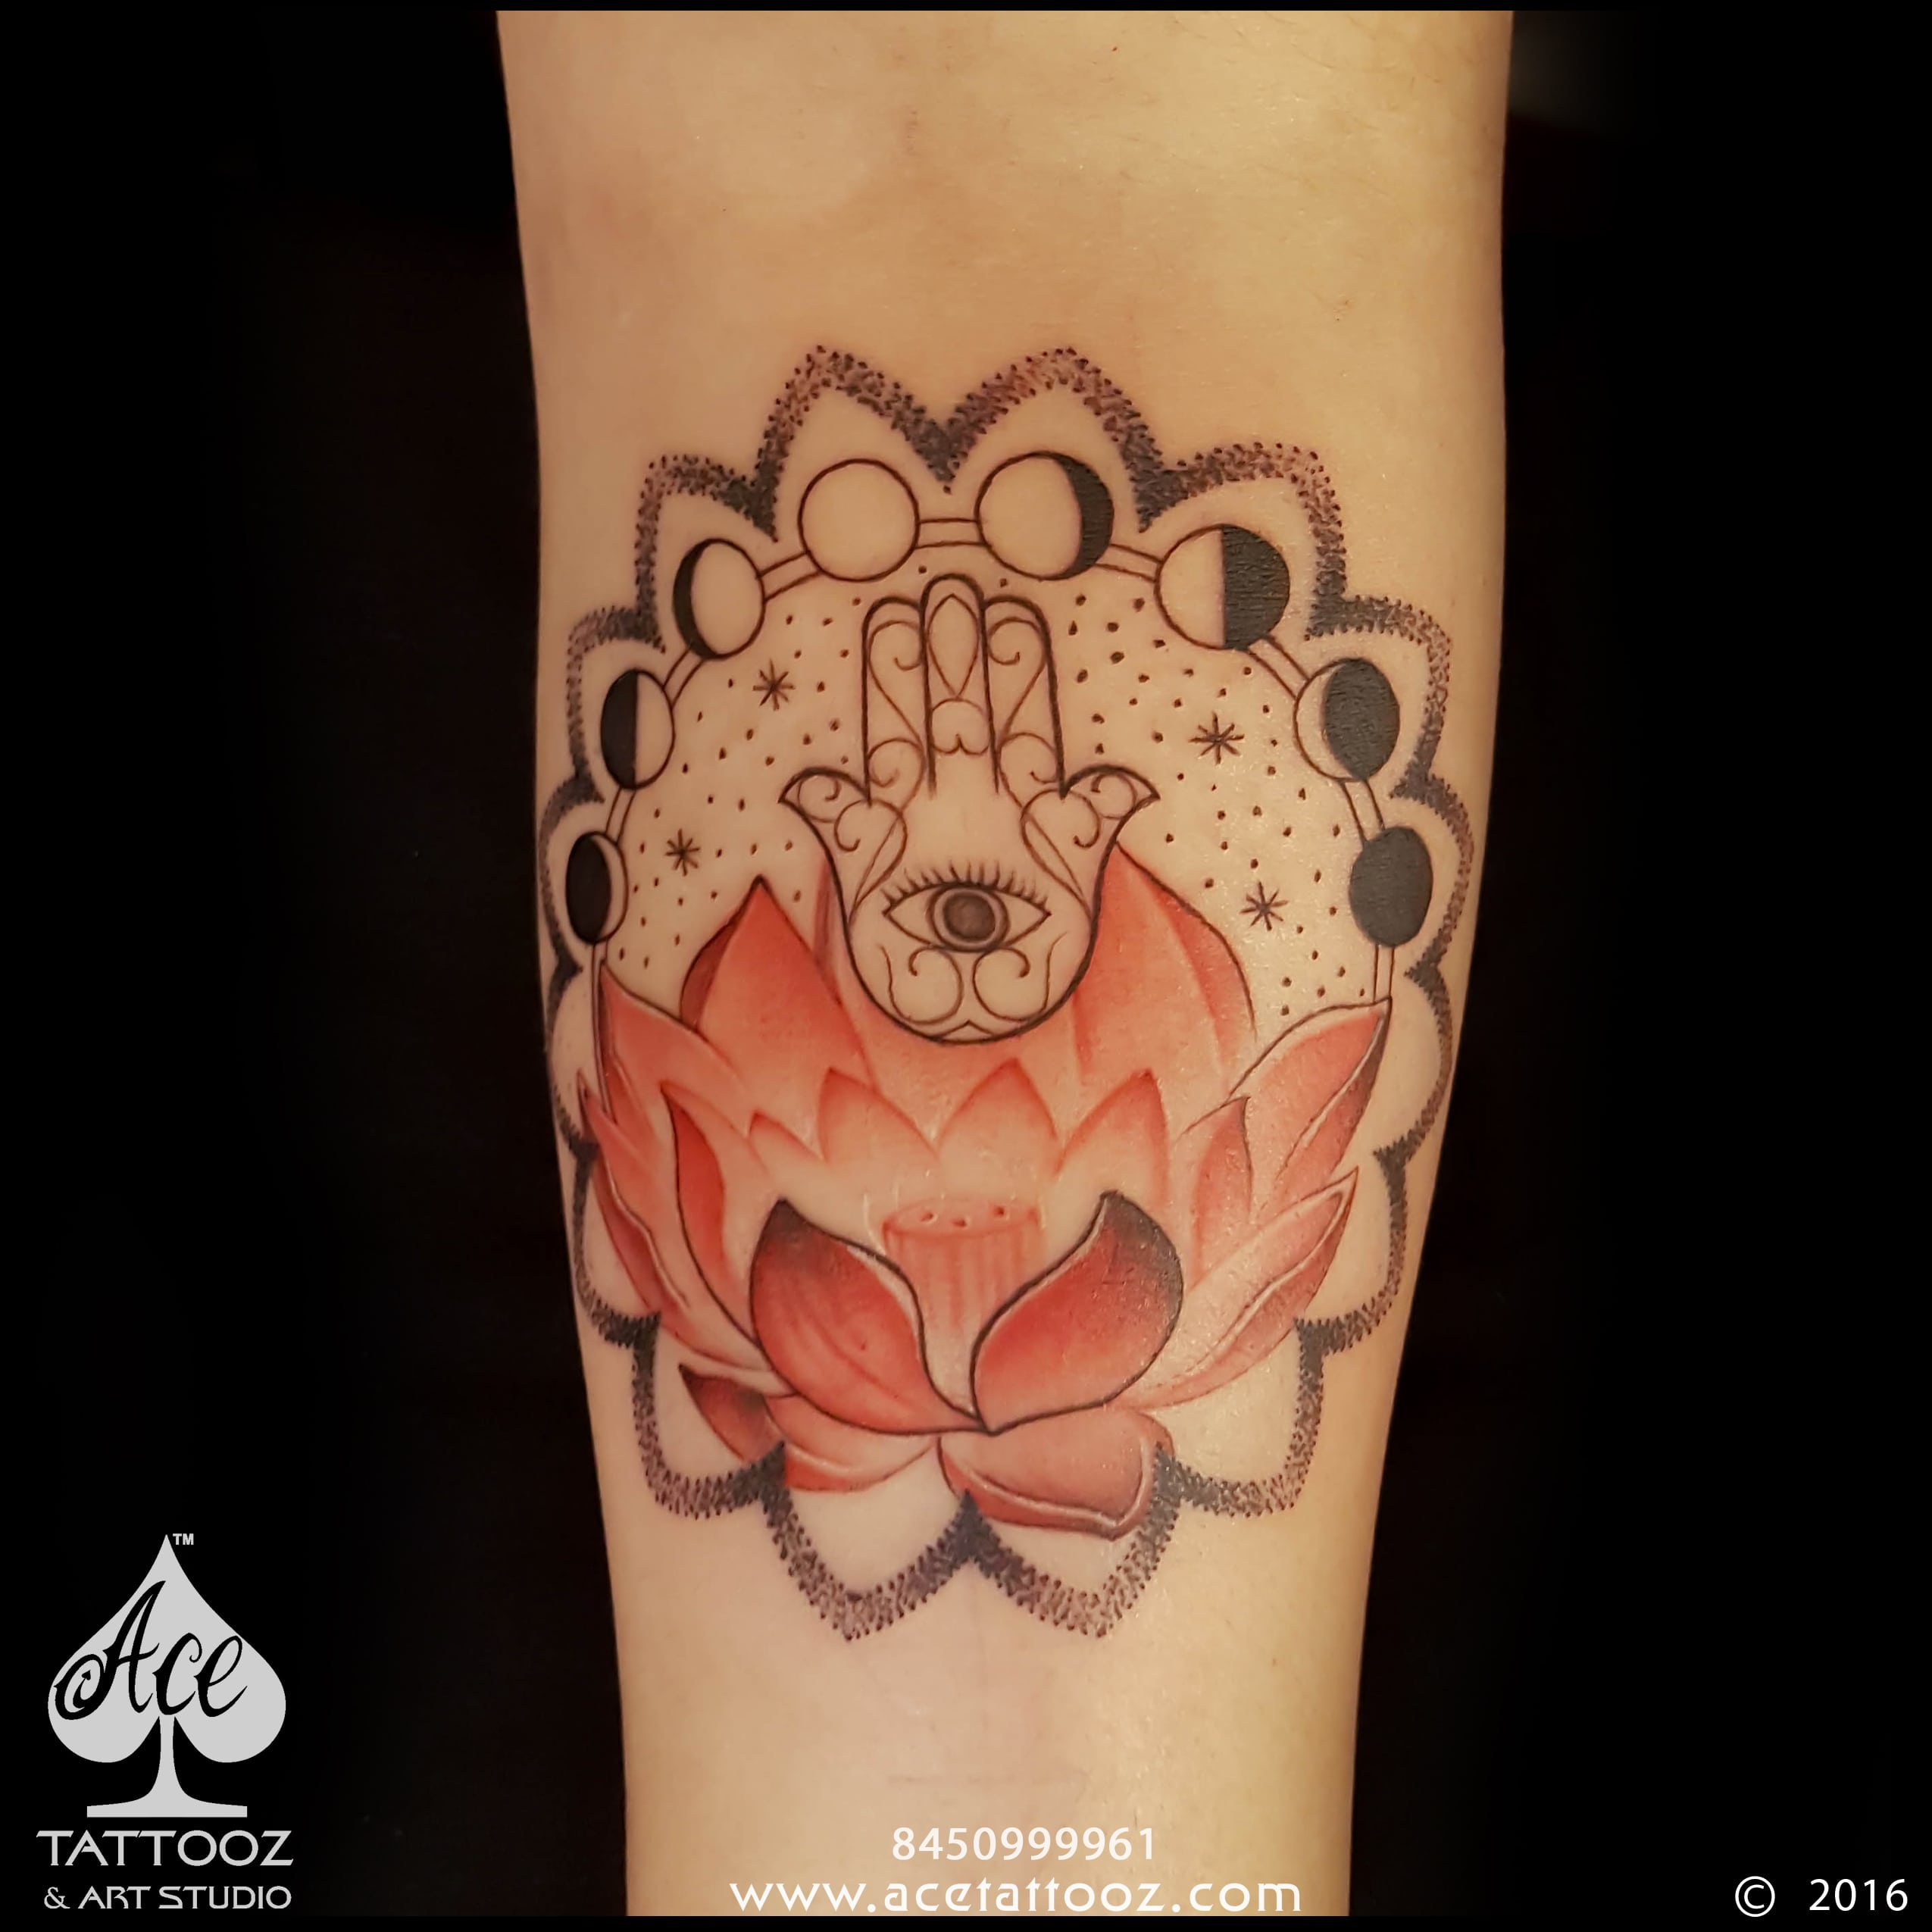 Hamsahand Tattoo